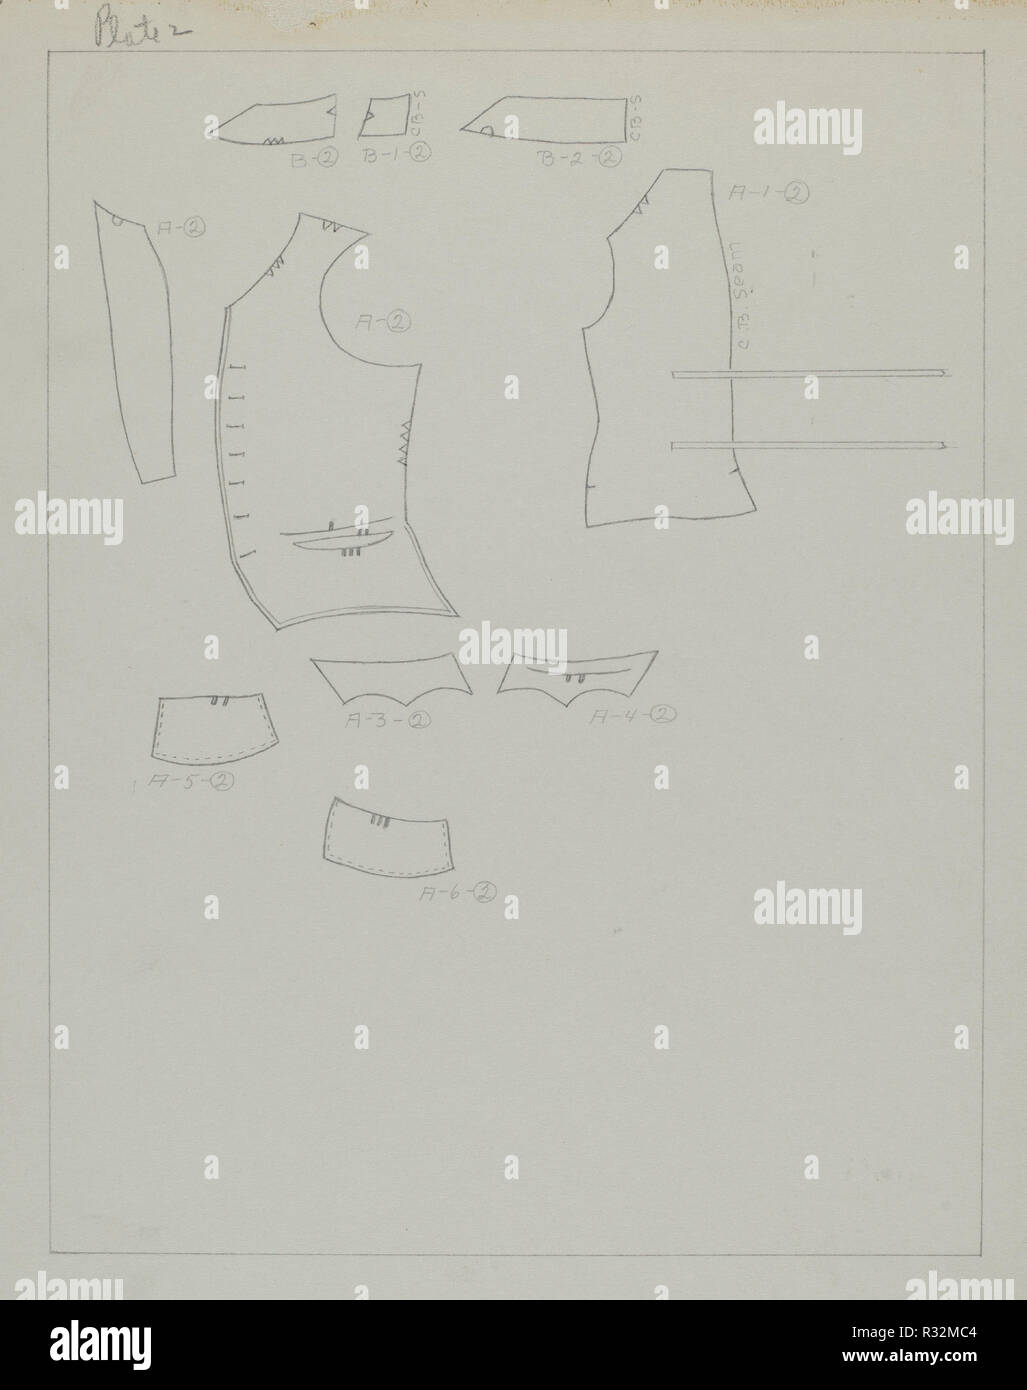 Suit Pattern. Dated: c. 1938. Dimensions: overall: 29.2 x 22.9 cm (11 1/2 x 9 in.). Medium: graphite on paper. Museum: National Gallery of Art, Washington DC. Author: Henry De Wolfe. - Stock Image